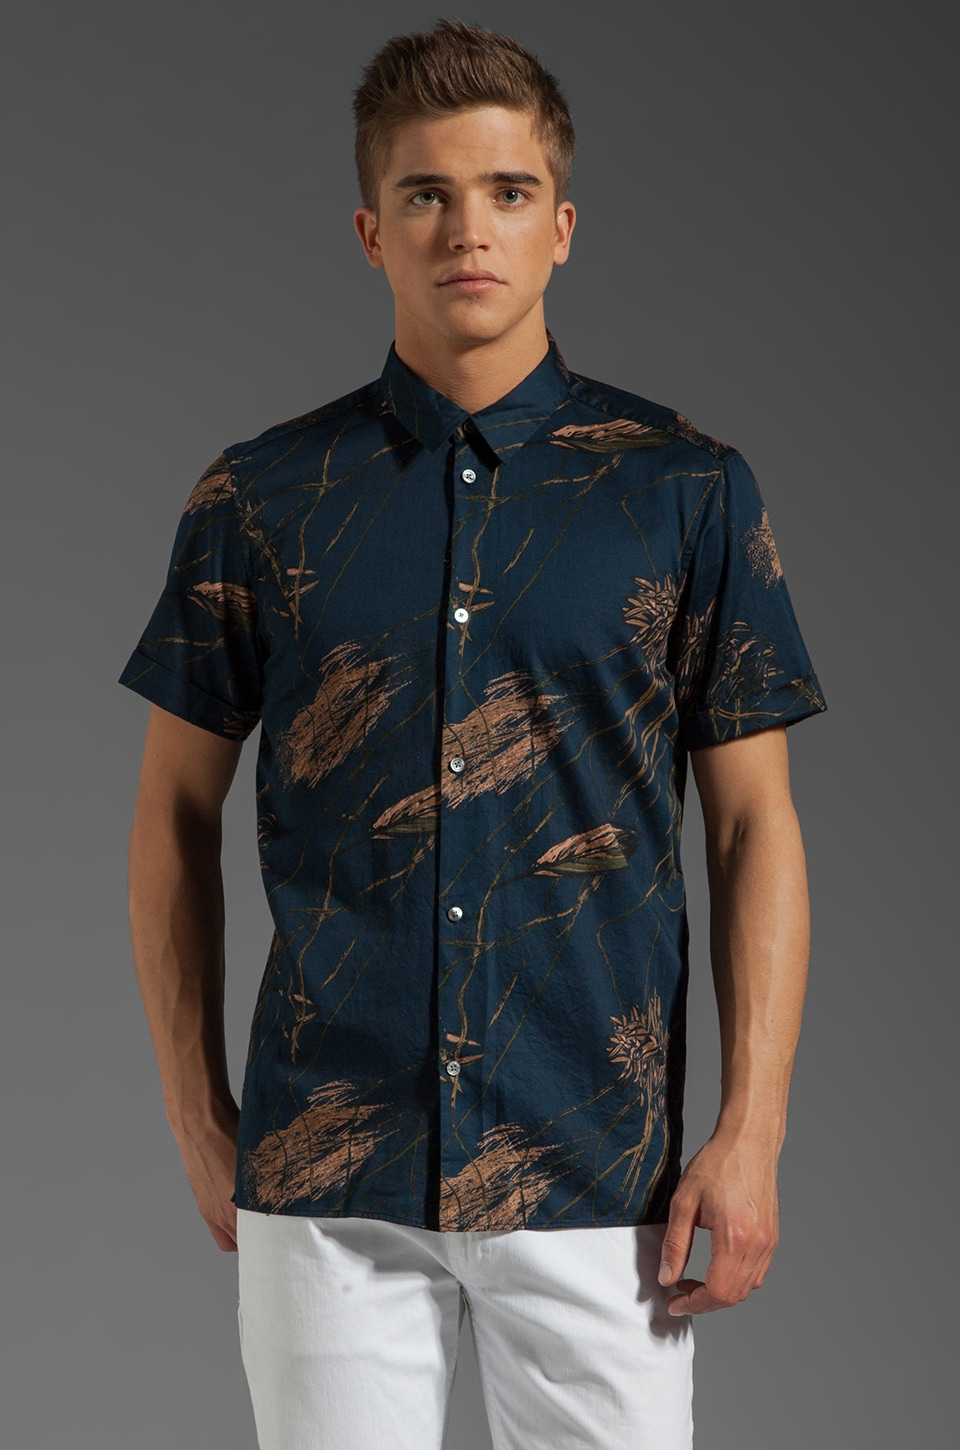 Marc by Marc Jacobs Planted Print S/S Button Up in Normandy Blue